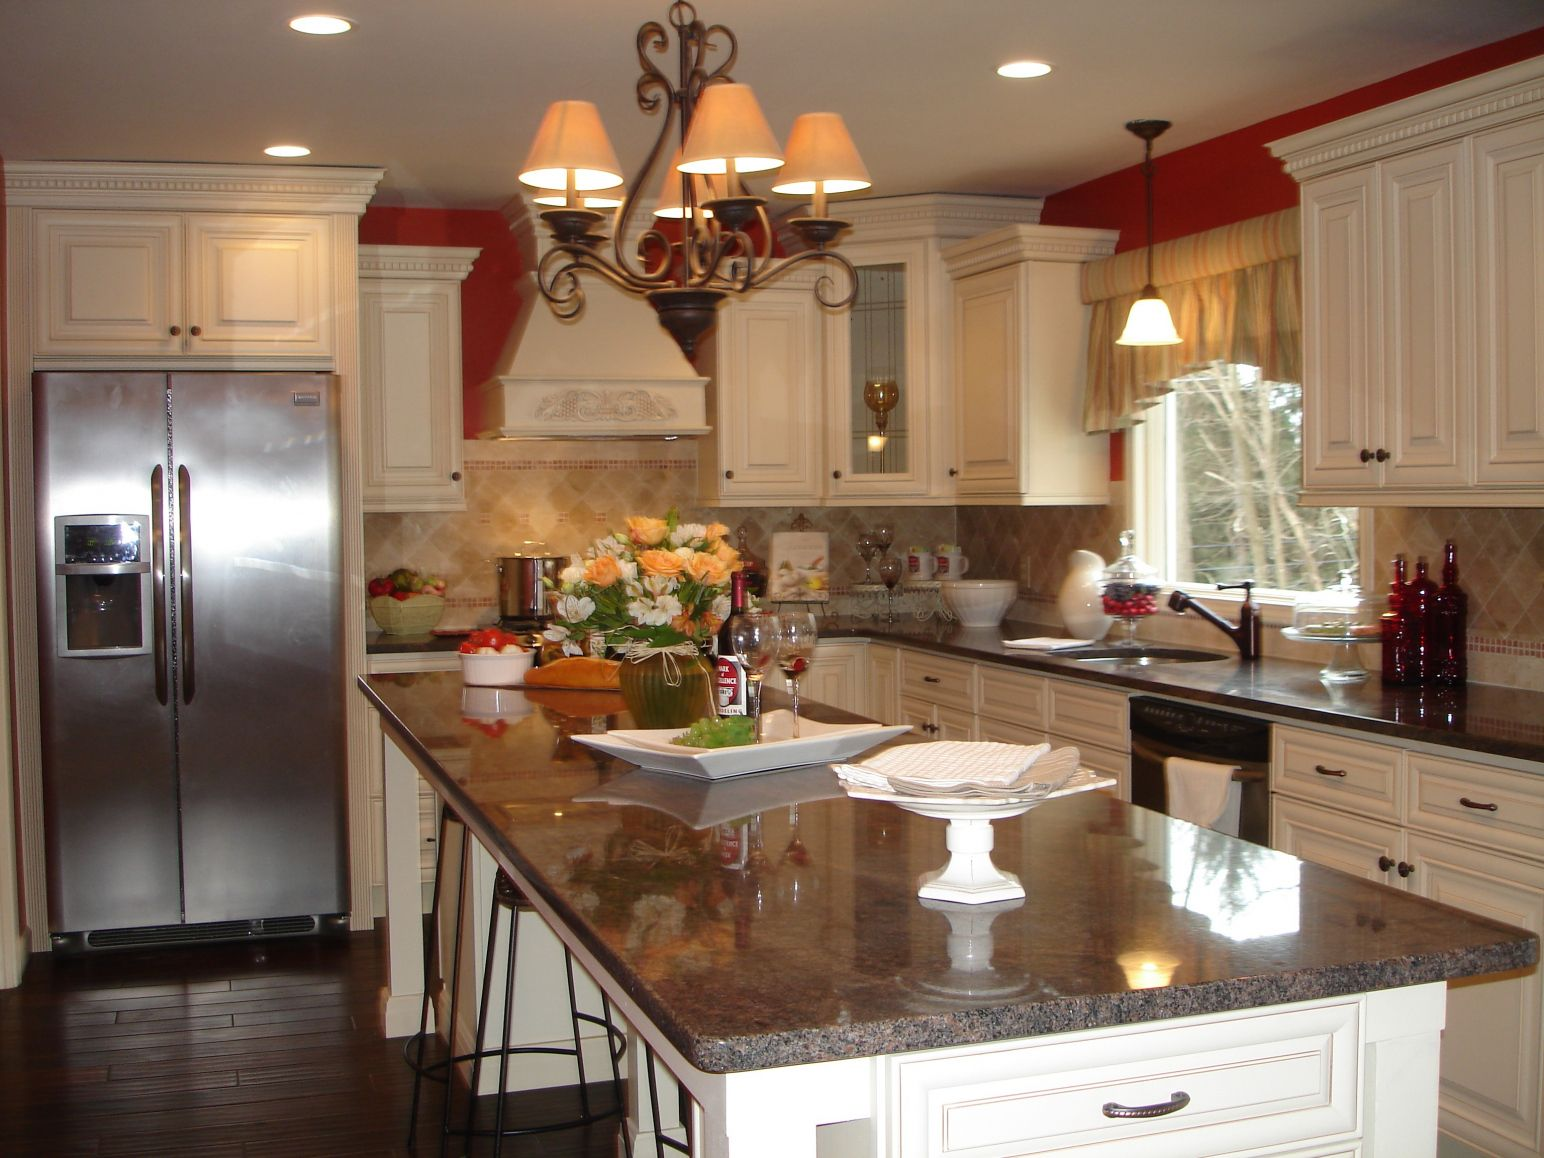 100+ Nj Kitchen Remodeling - Kitchen Track Lighting Ideas Check more ...